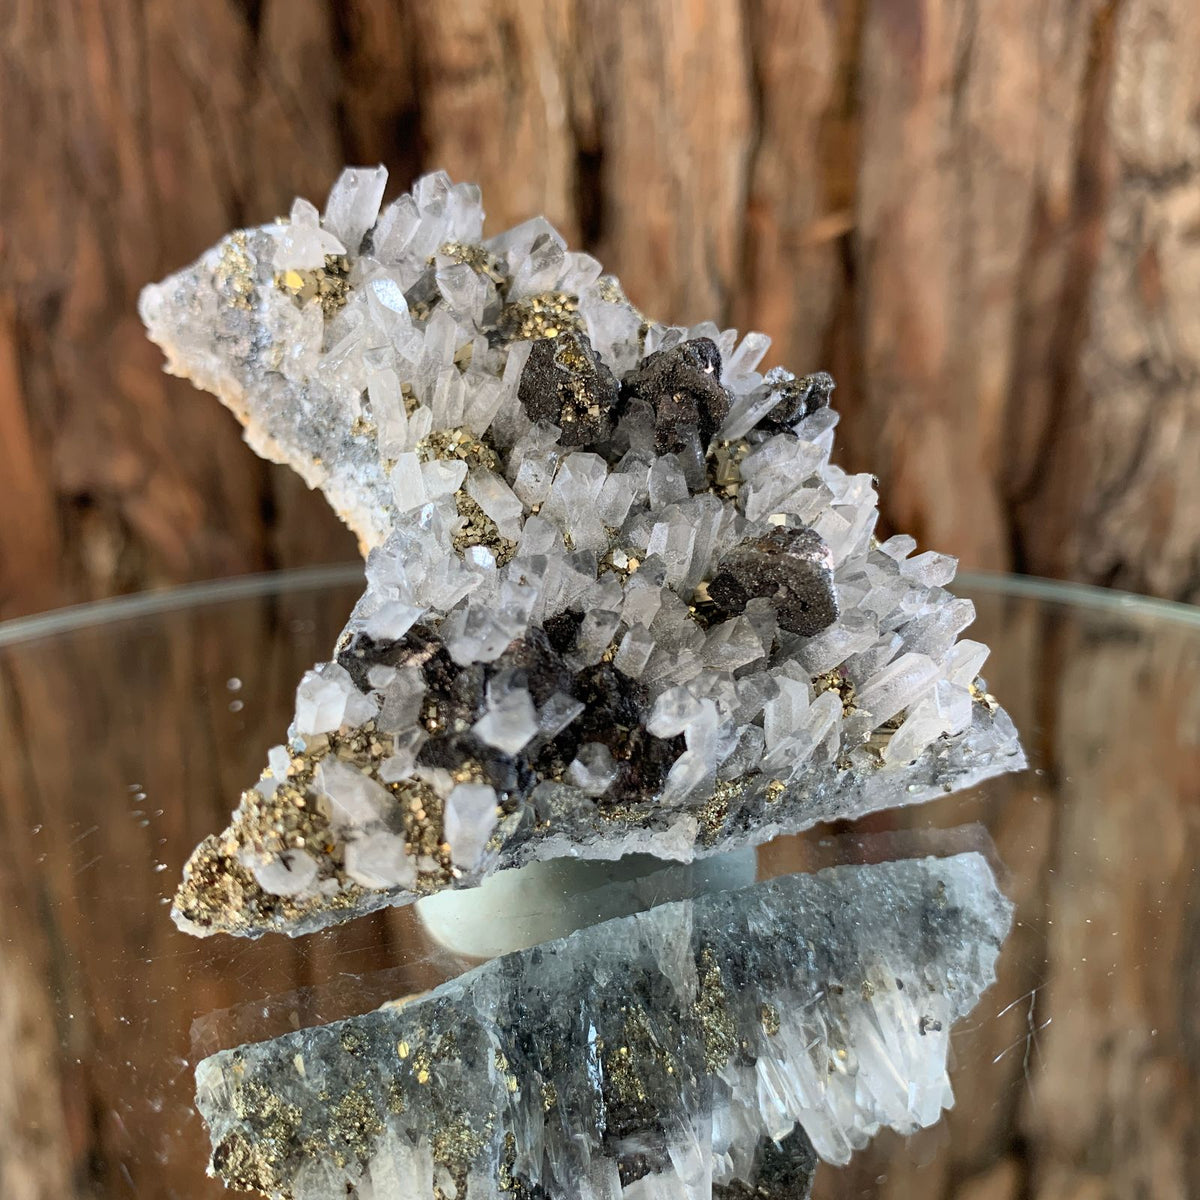 6.6cm 118g Pyrite, Clear Quartz, Sphalerite from Huaron, Peru